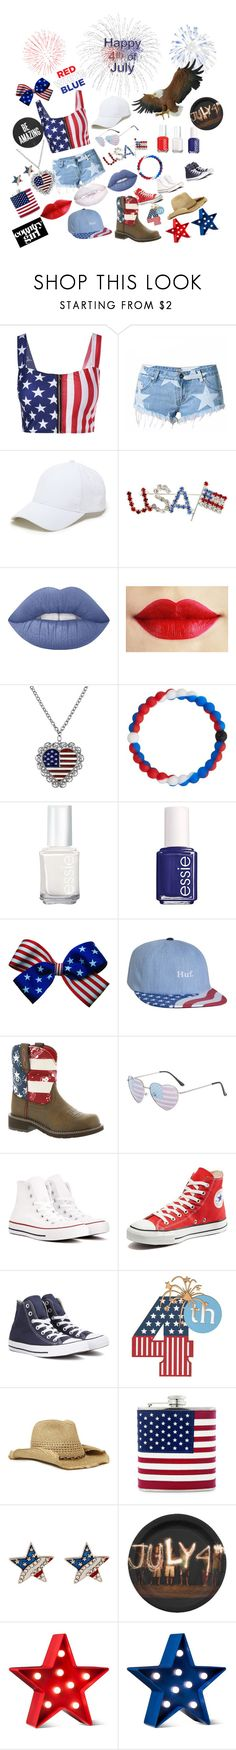 """""""Happy 4th of July🎉"""" by genayala ❤ liked on Polyvore featuring Sole Society, Lime Crime, 1928, Lokai, Essie, HUF, Ariat, claire's, Converse and Nine West"""